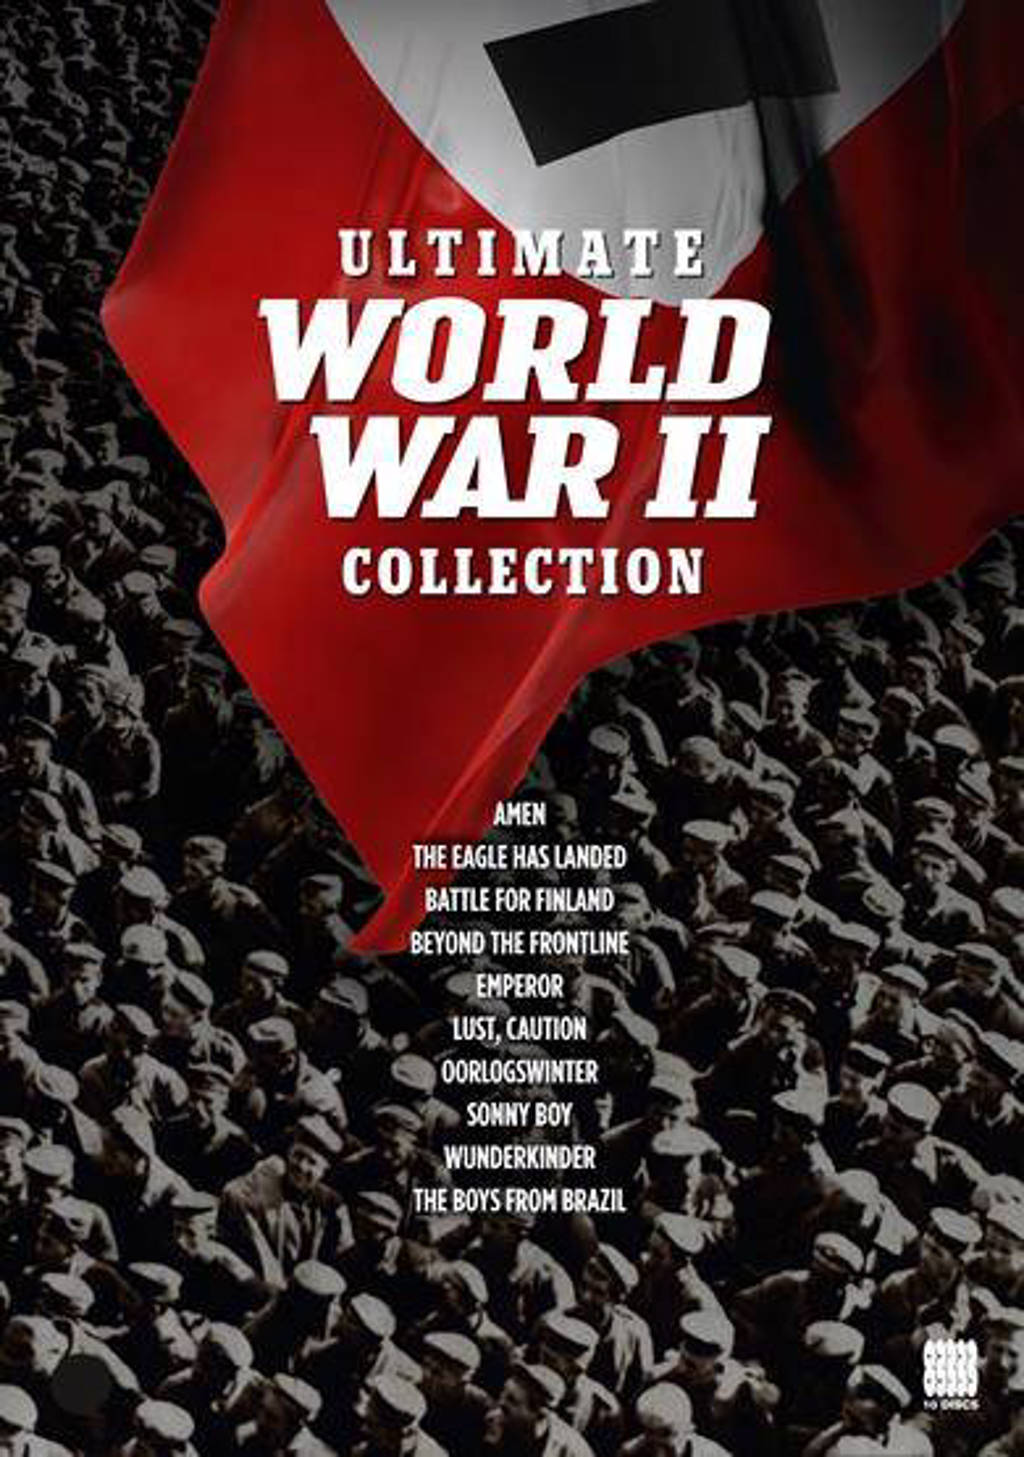 Ultimate world war II collection (DVD)